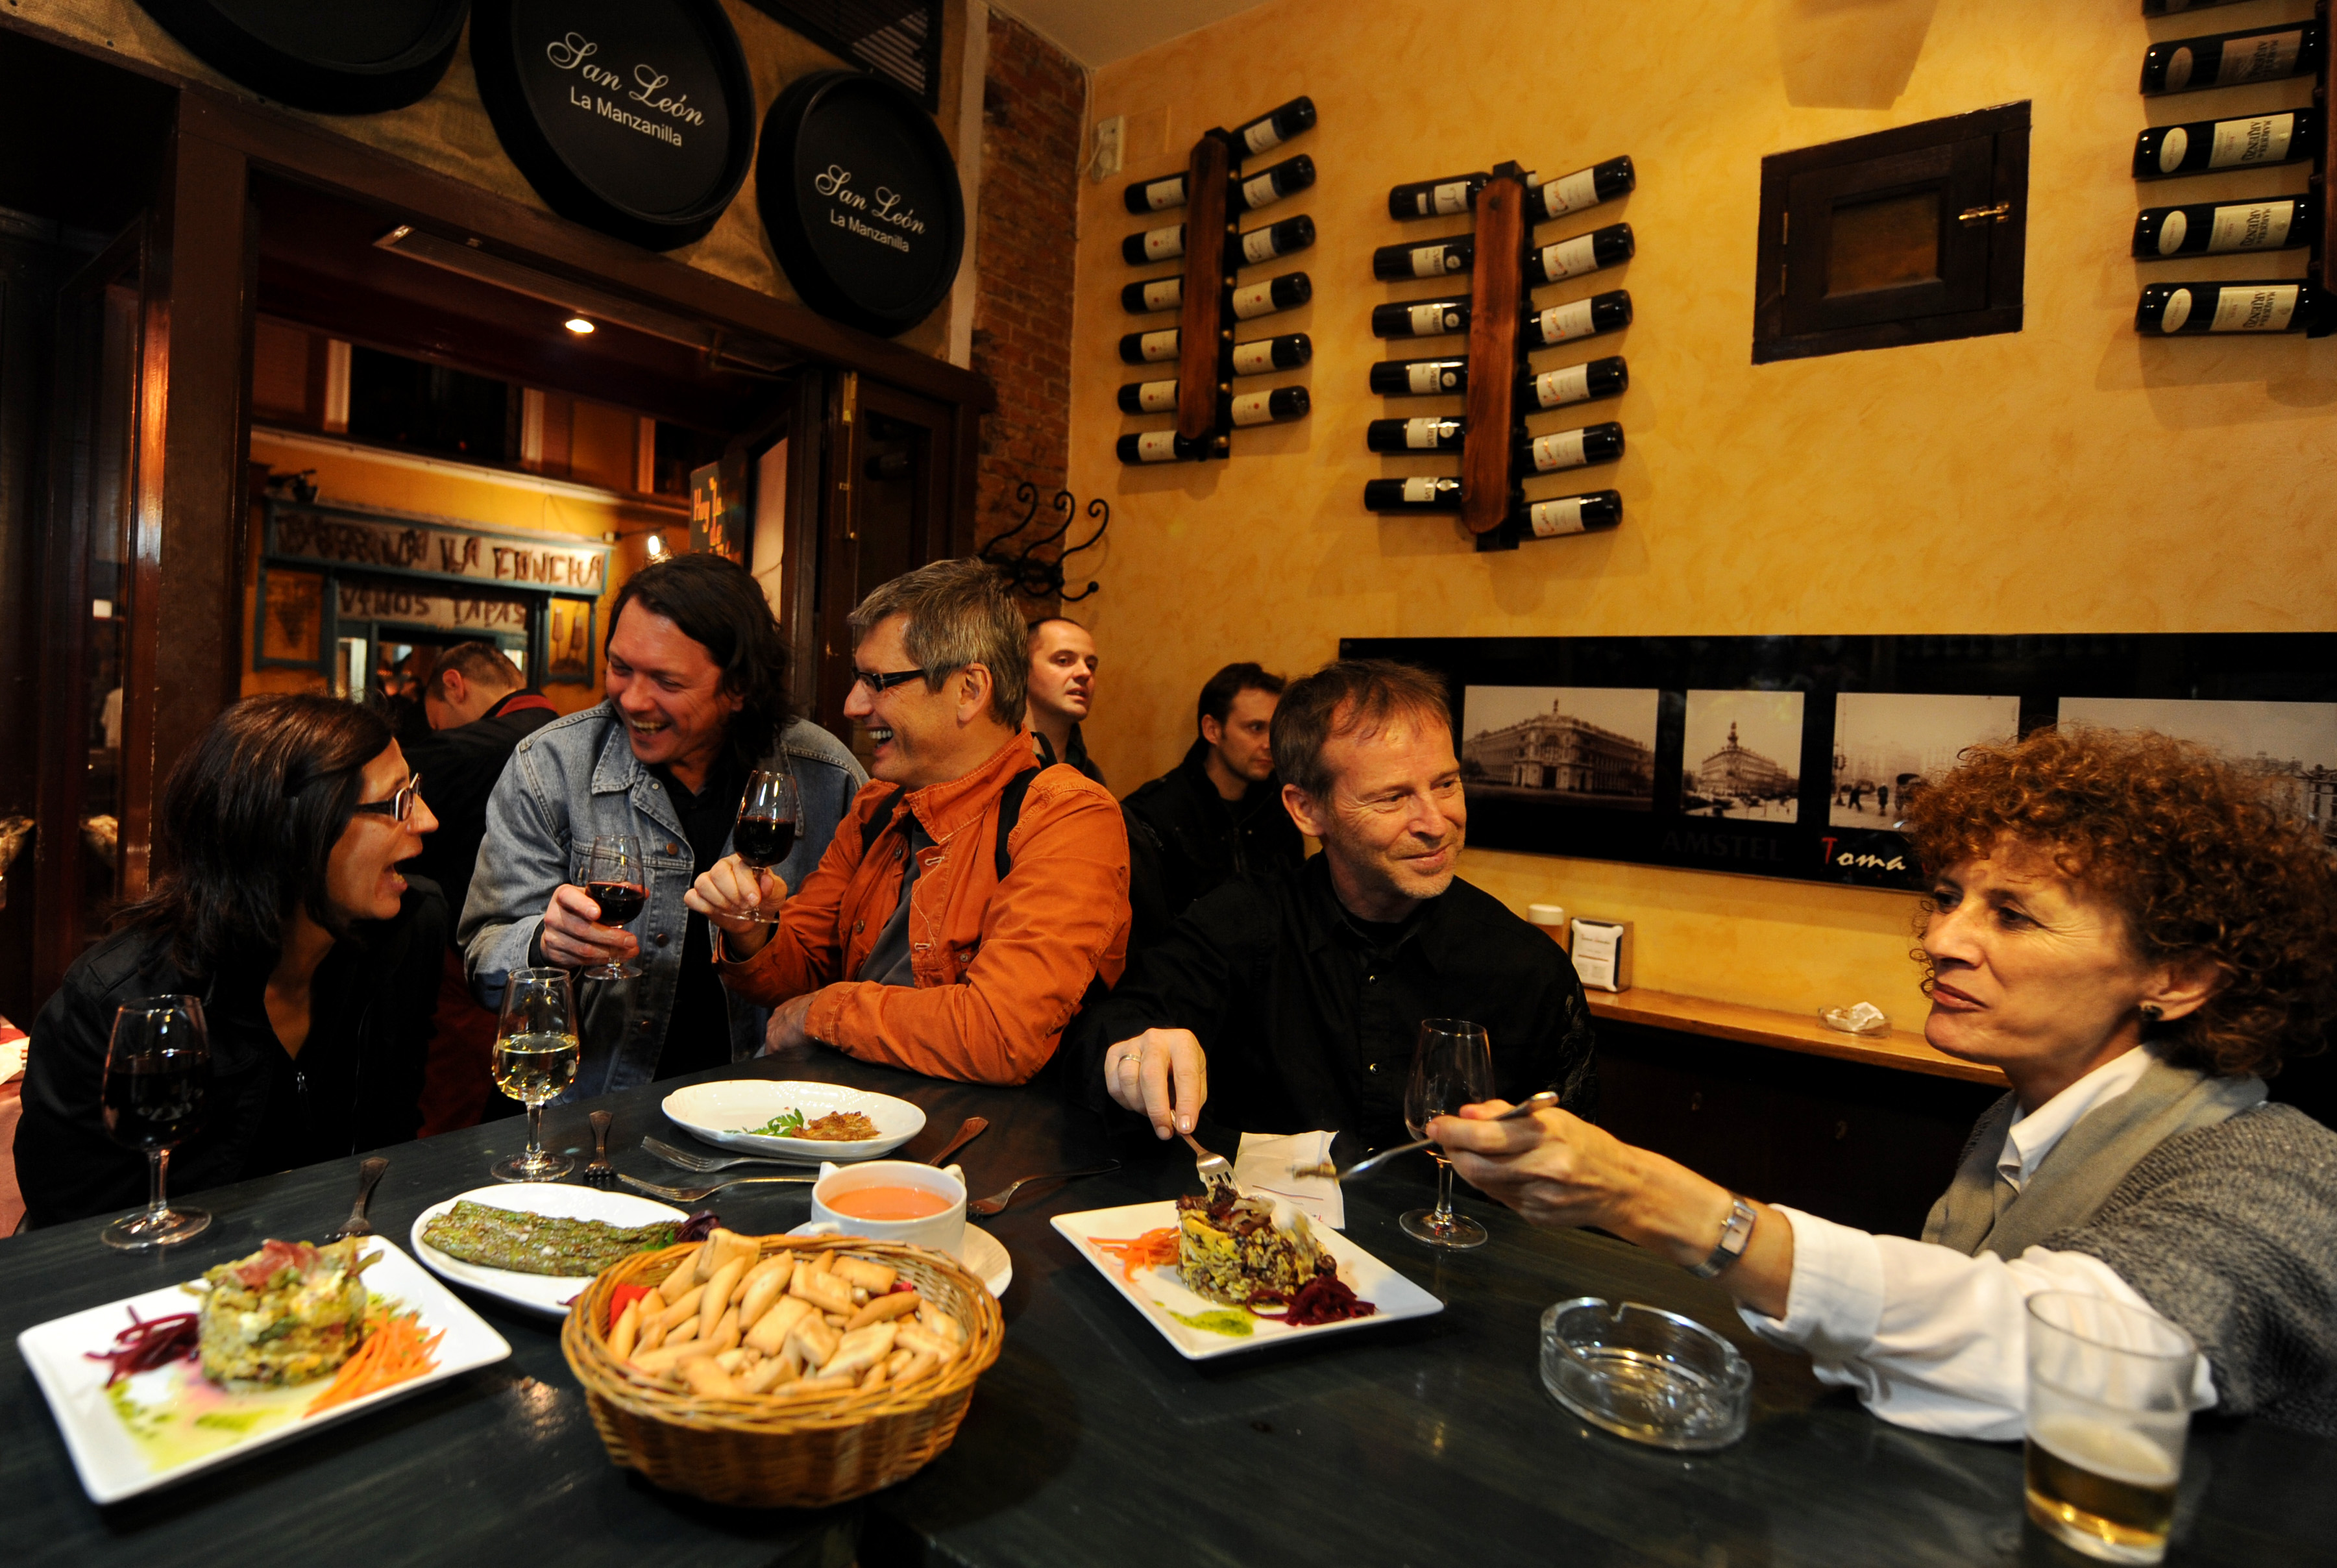 Traditional tapas in Spain